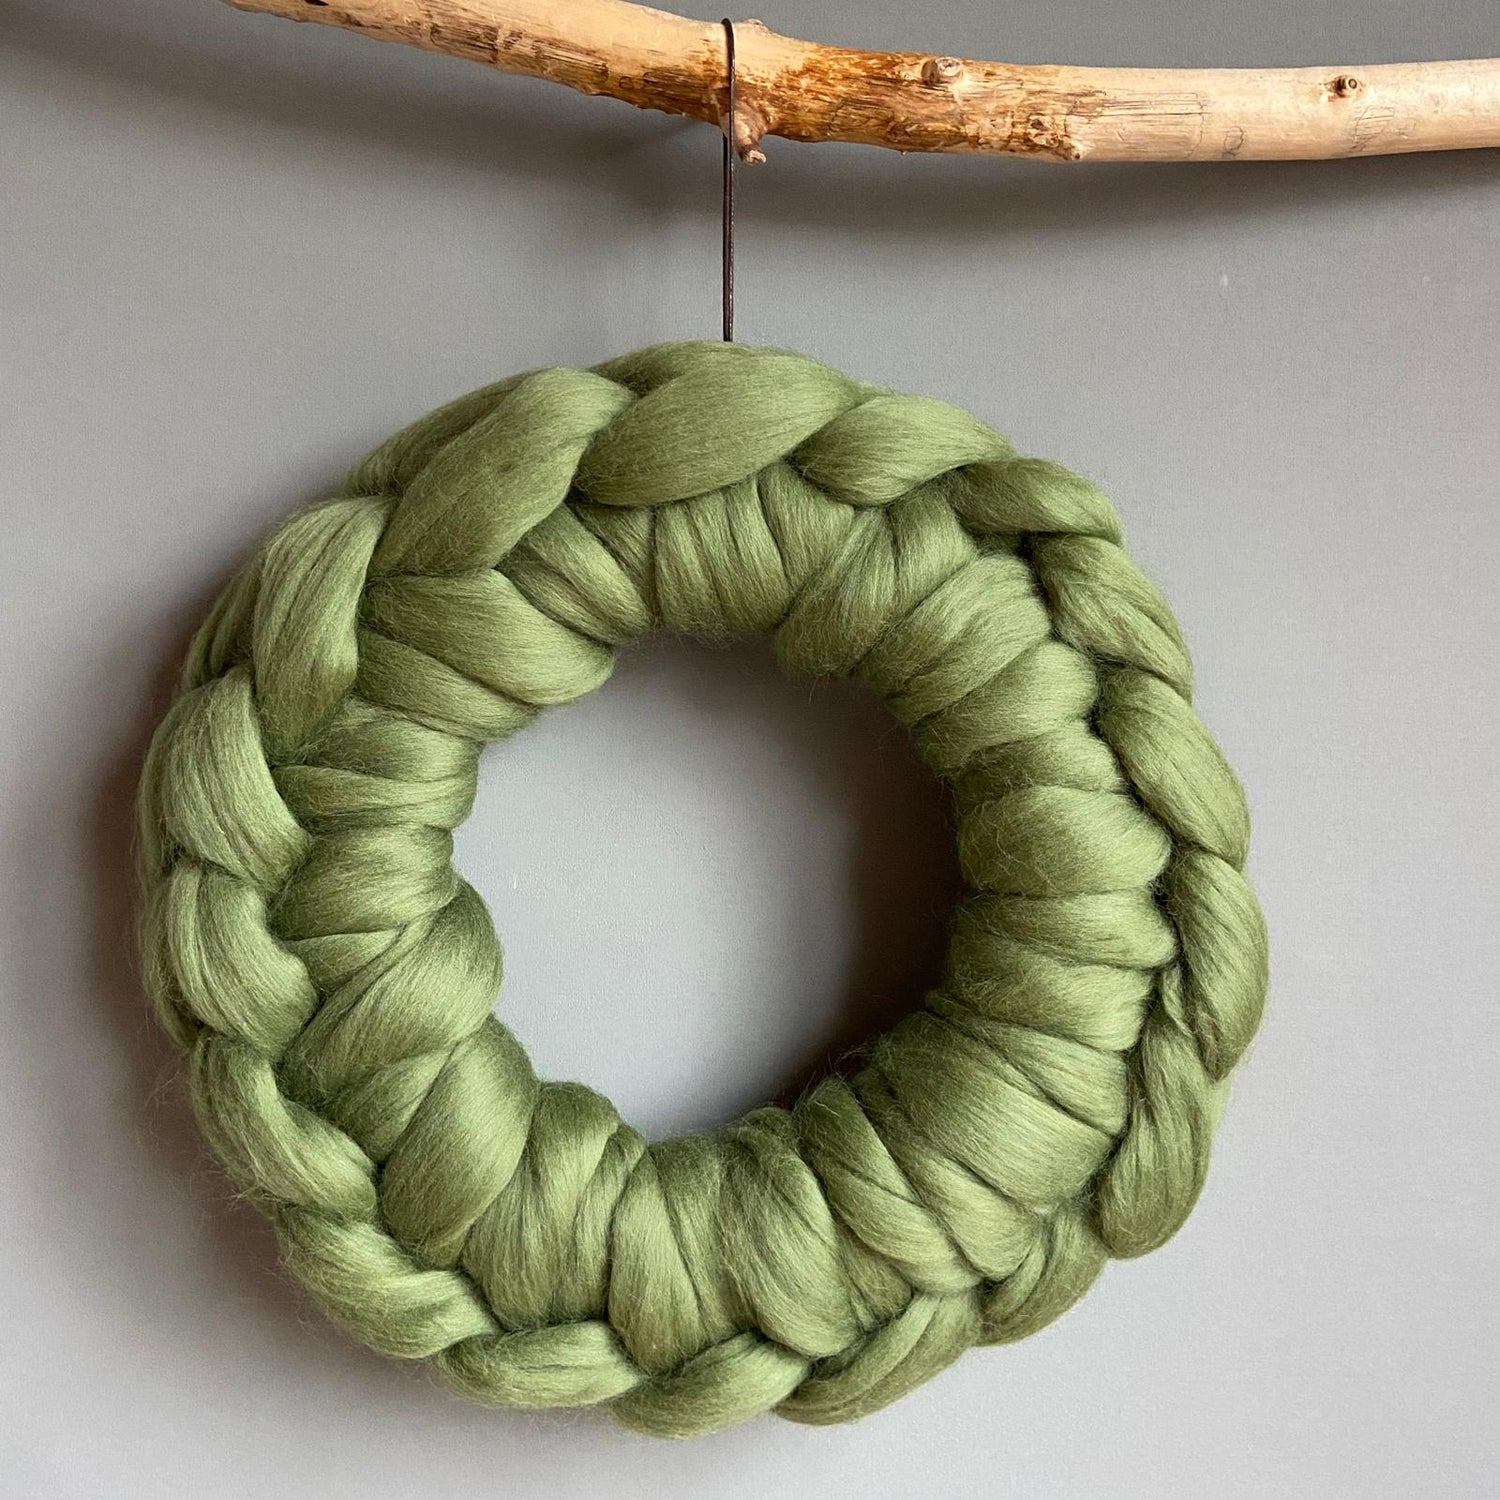 Image of Crocheted wreath